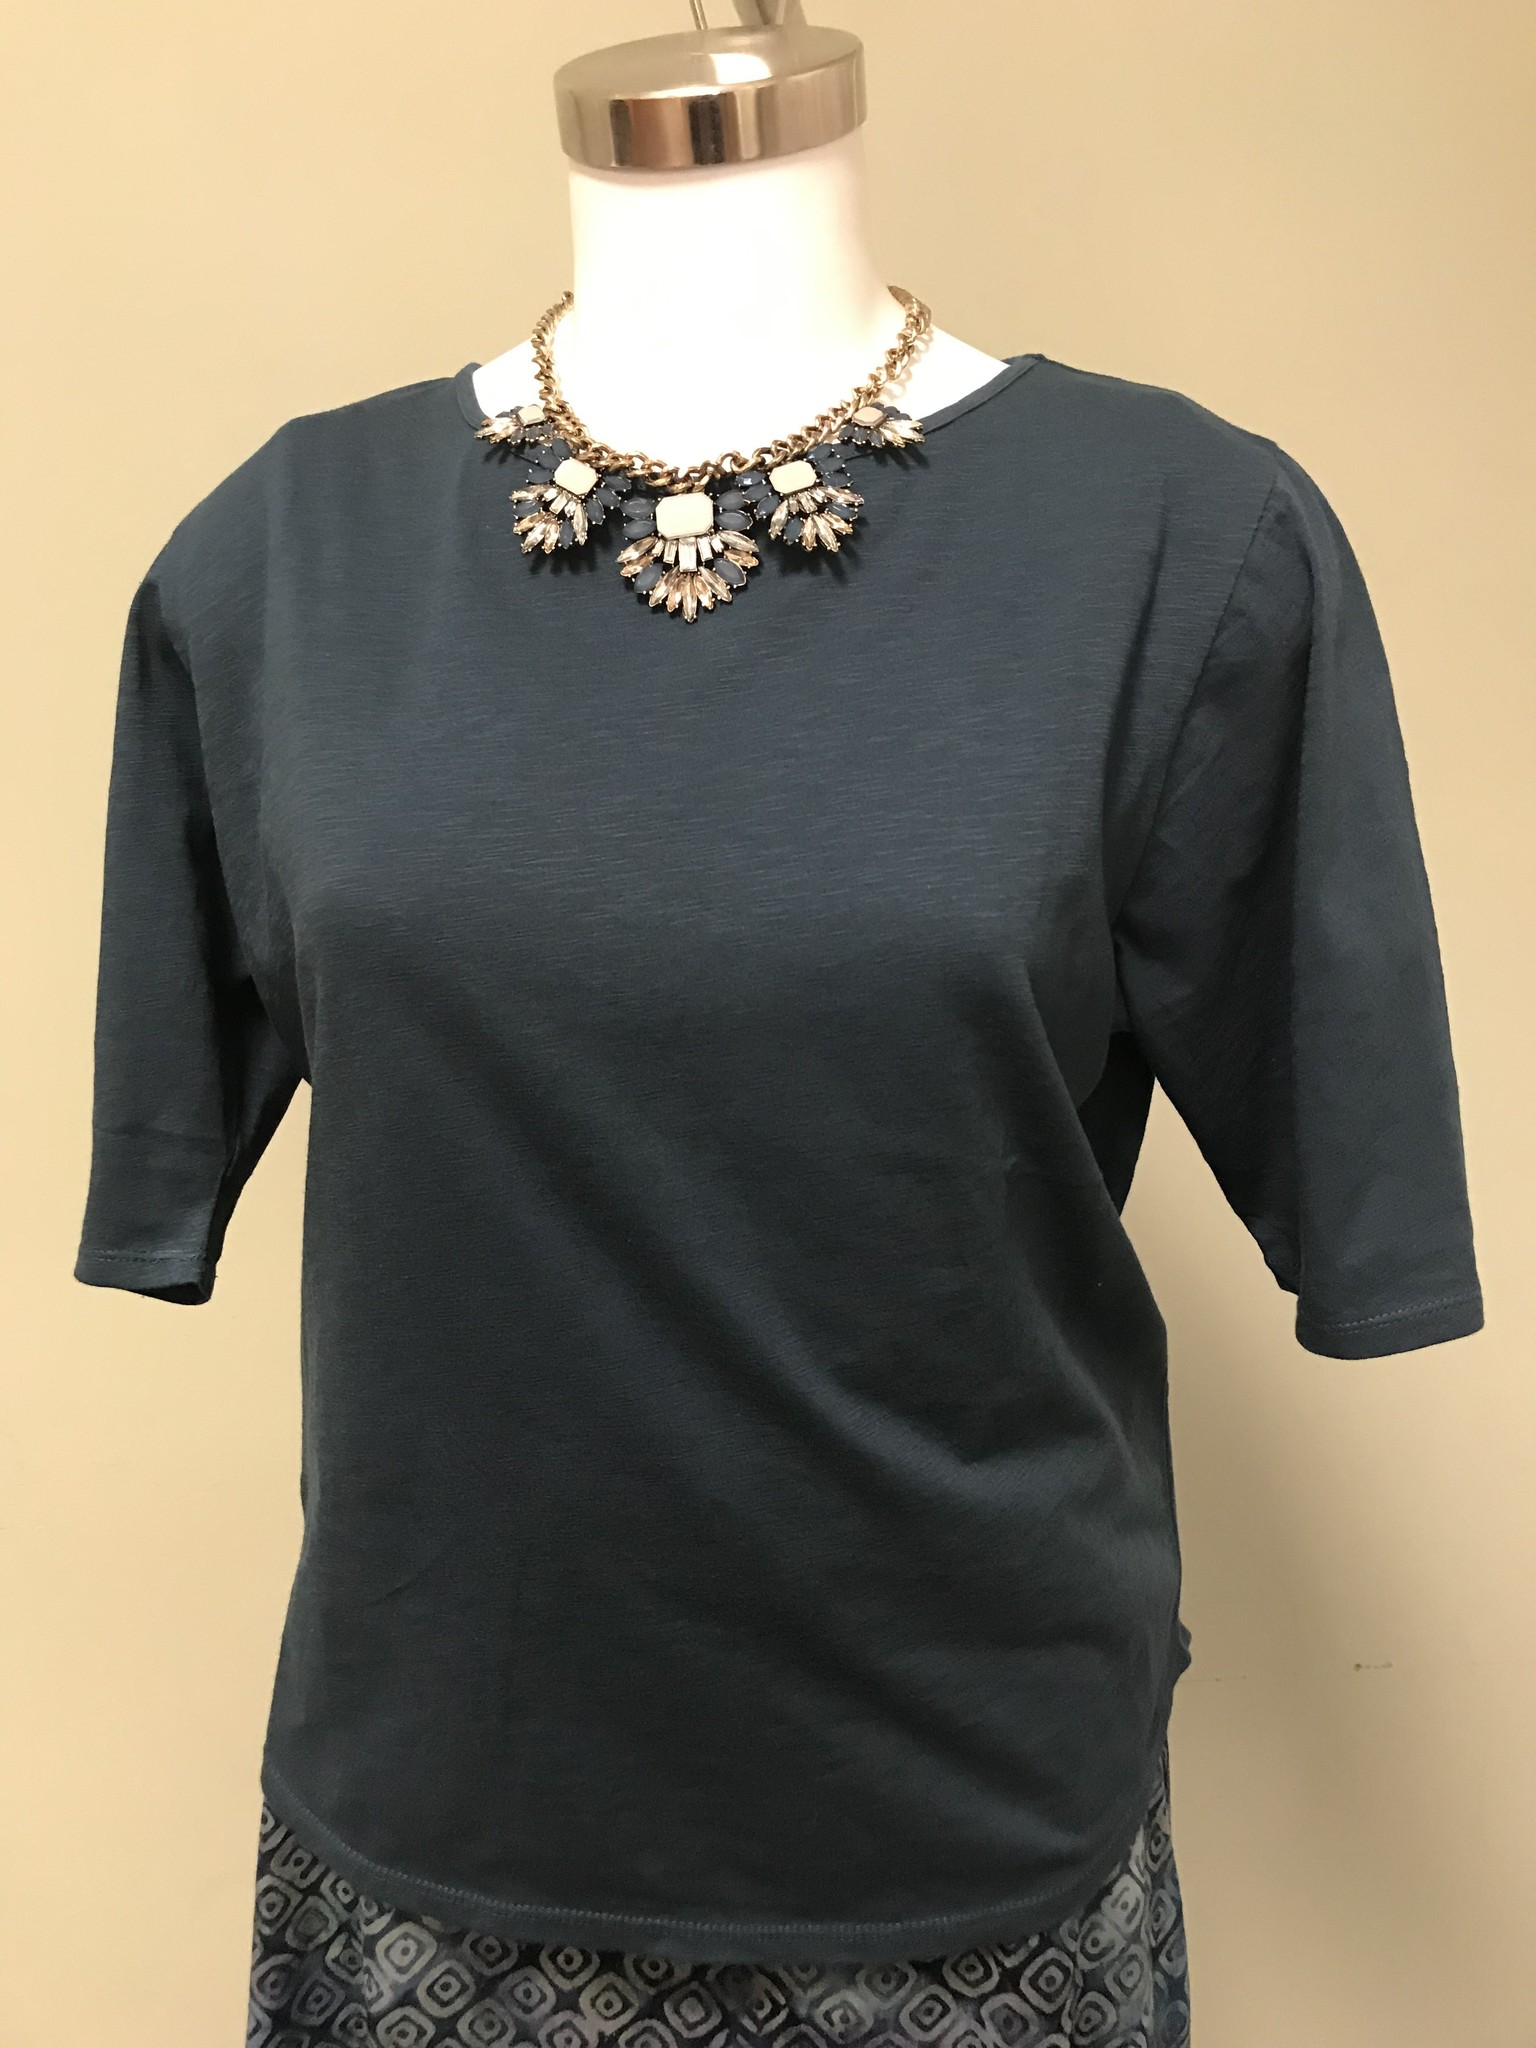 WIND RIVER Crew Neck Blouse